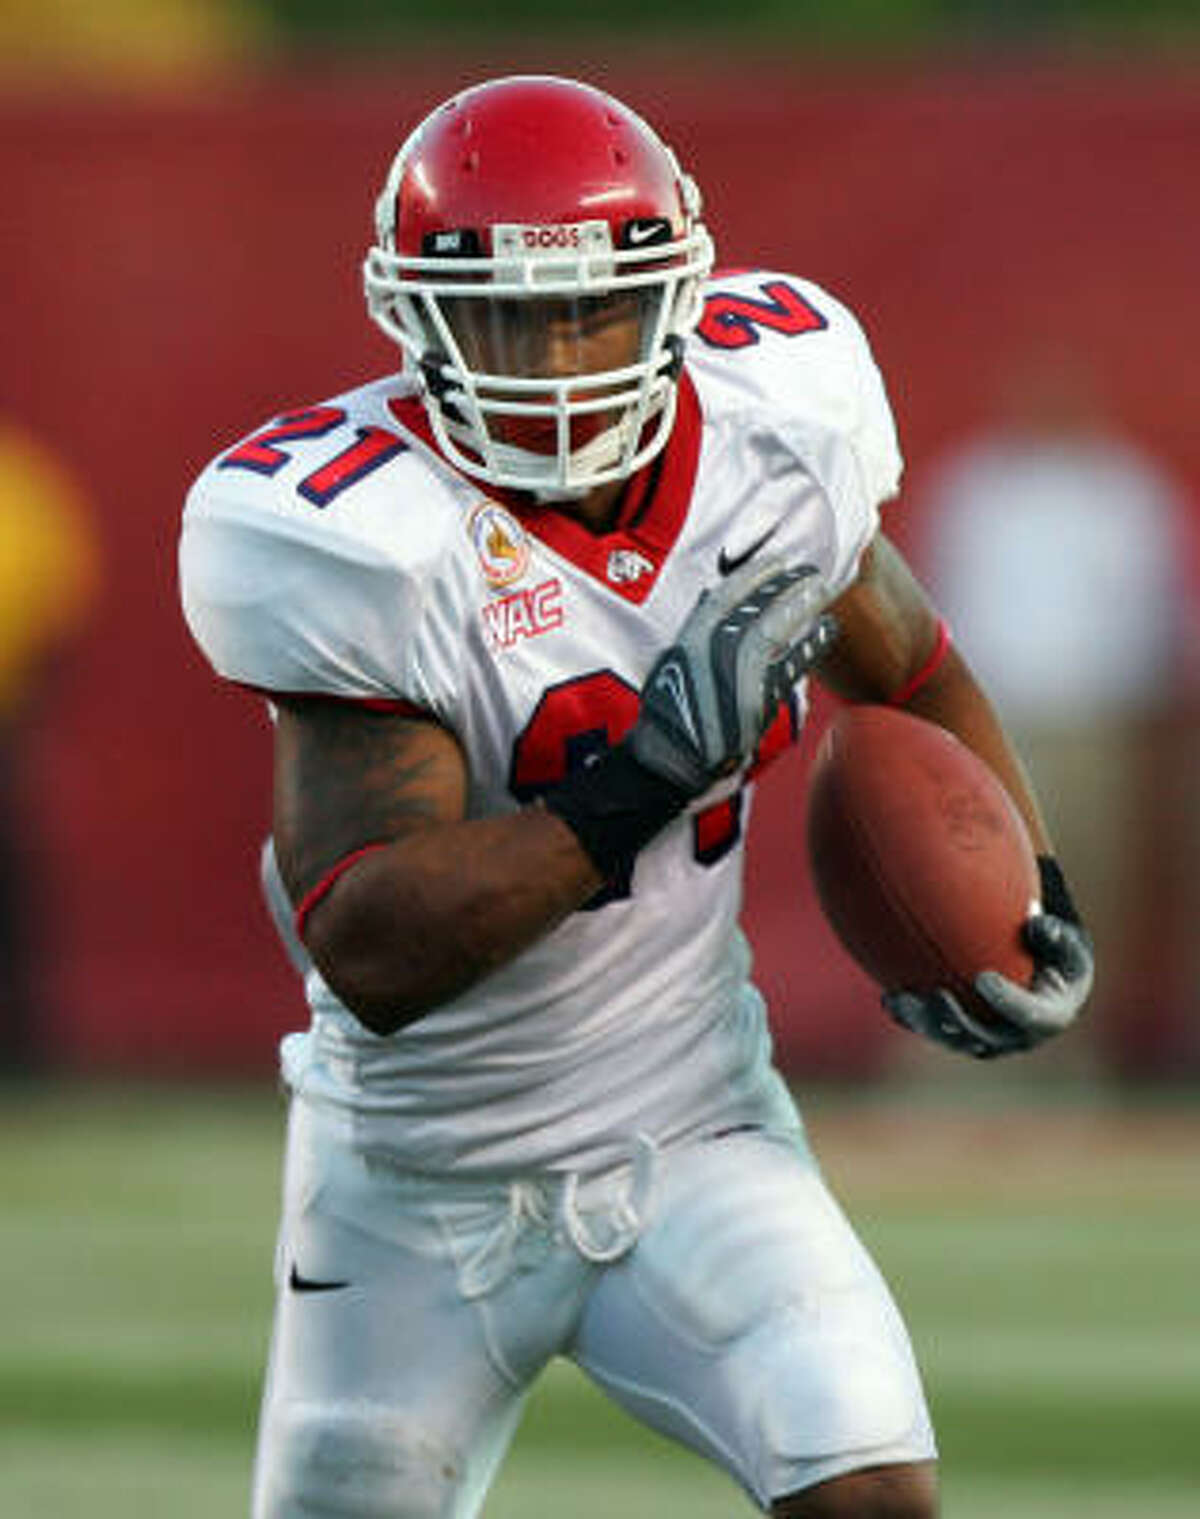 Ryan Mathews, 5-11 ¾, 218, 4.47, Fresno State A junior who rushed for 1,808 yards - 6.6 per carry - and scored 19 touchdowns last season. He's ideal for the one-cut, zone system the Texans, Redskins and Seahawks, among others, are using. Played in a pro-style offense for former NFL assistant Pat Hill. Needs to work on blocking and receiving. Injuries are a concern. Should be the second back drafted.